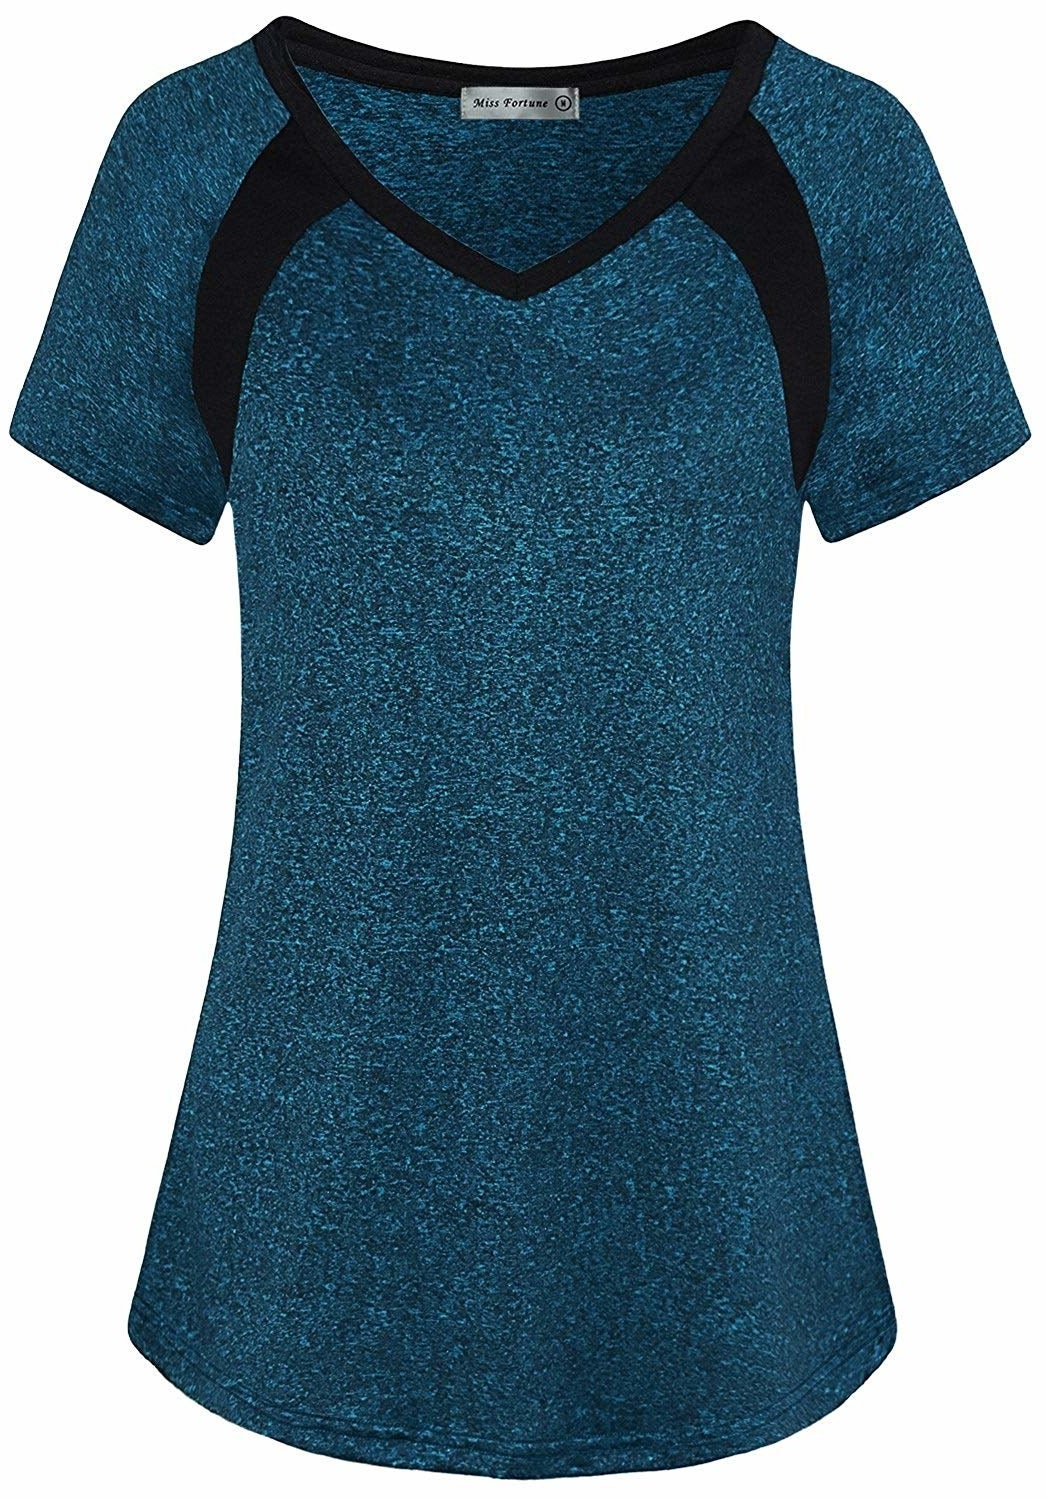 blue marled T-shirt with black details on the shoulders